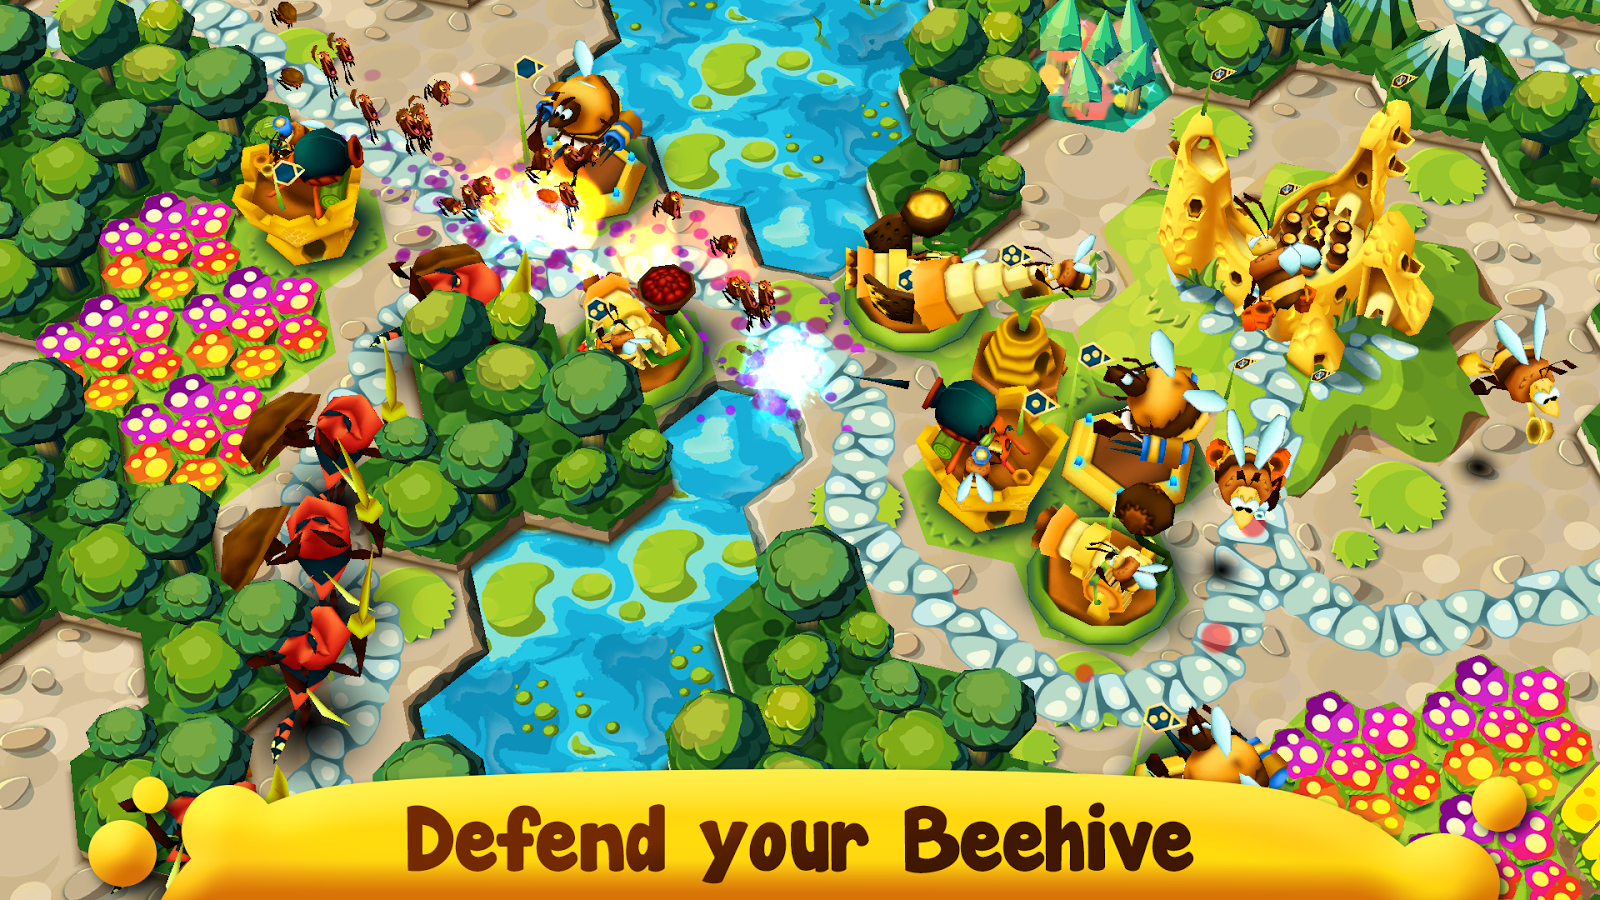 BeeFense - Fortress Defense Screenshot 0